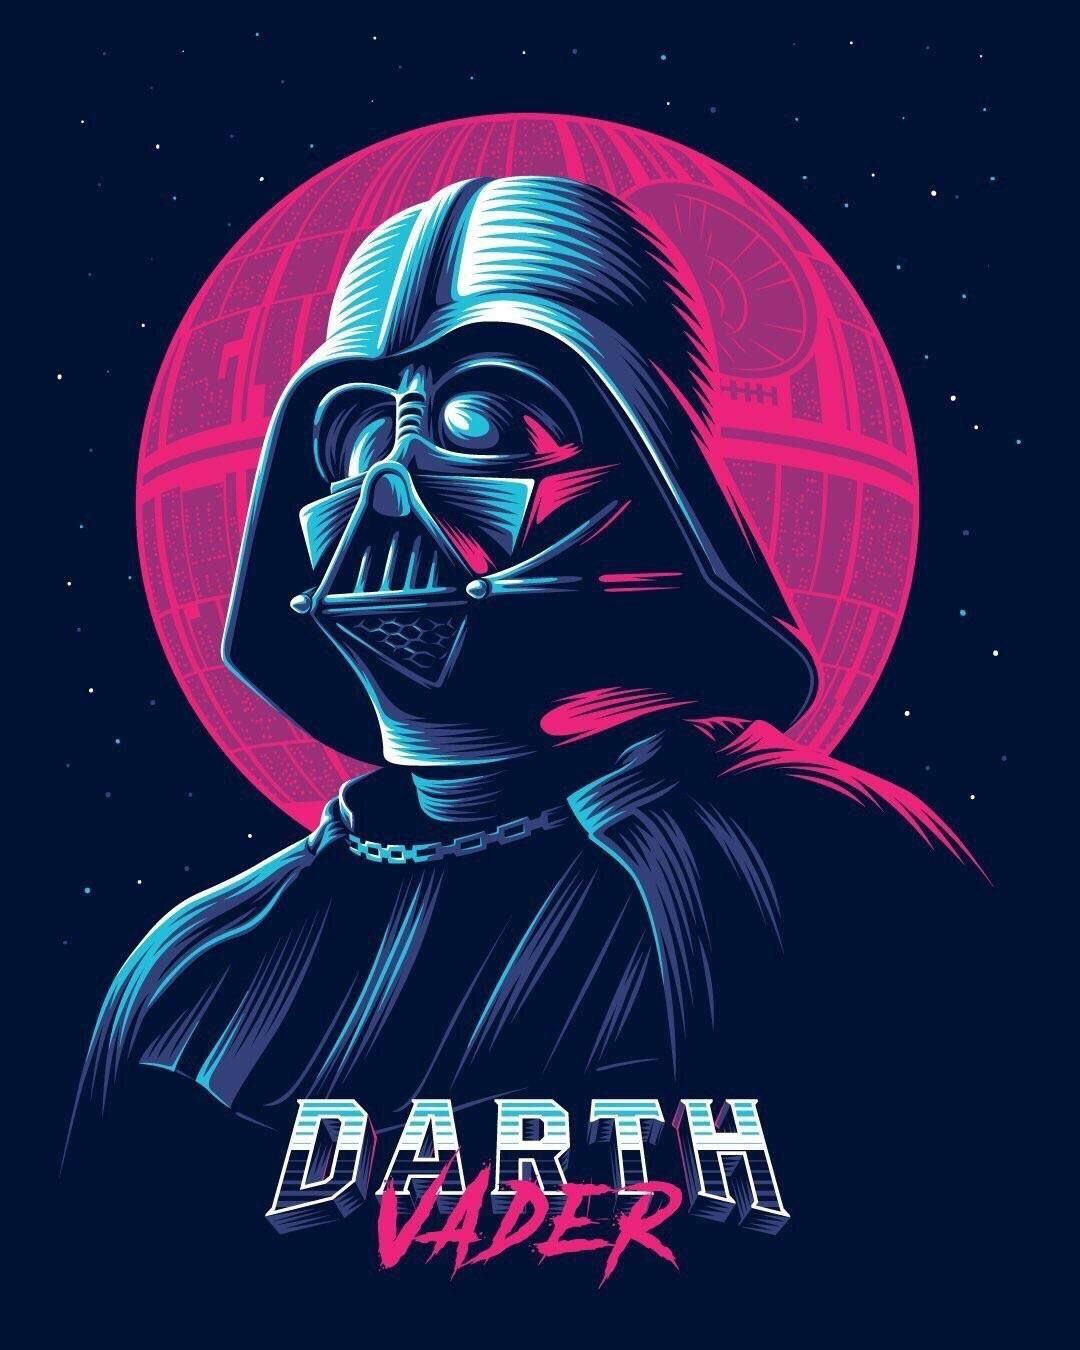 Outrun Vader Star Wars Illustration Star Wars Awesome Star Wars Poster